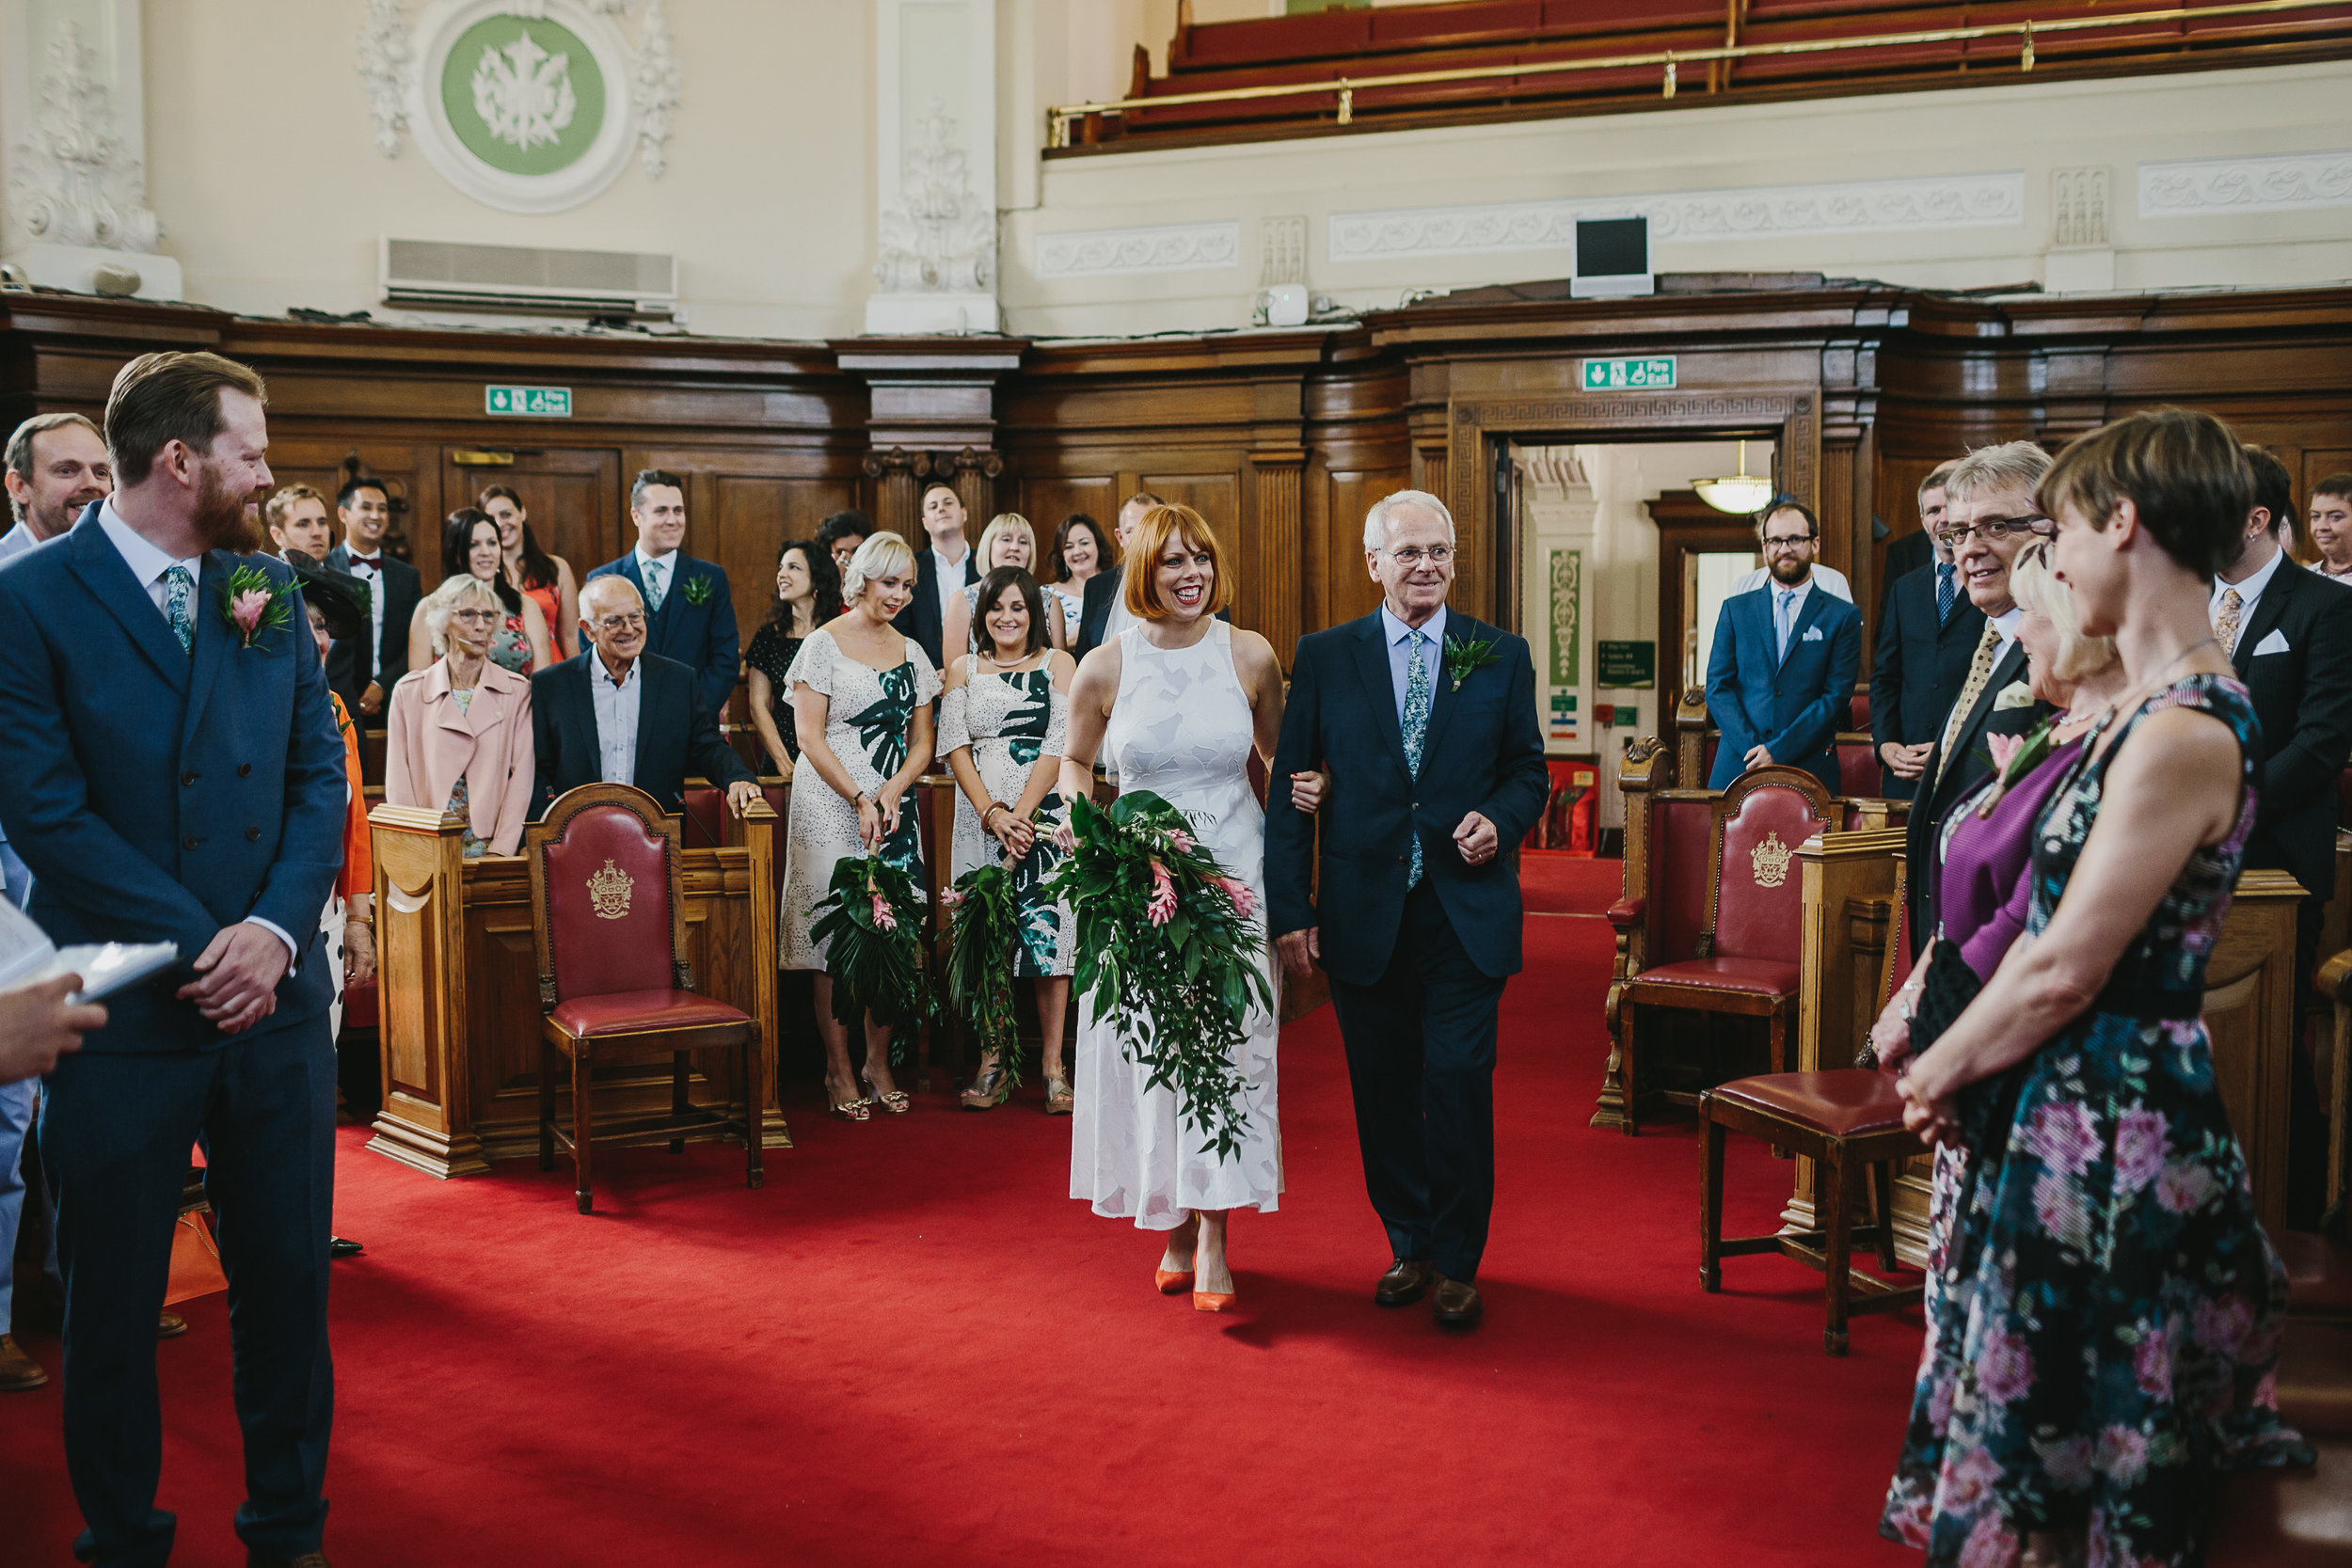 Islington_Town_Hall_Wedding_19.JPG